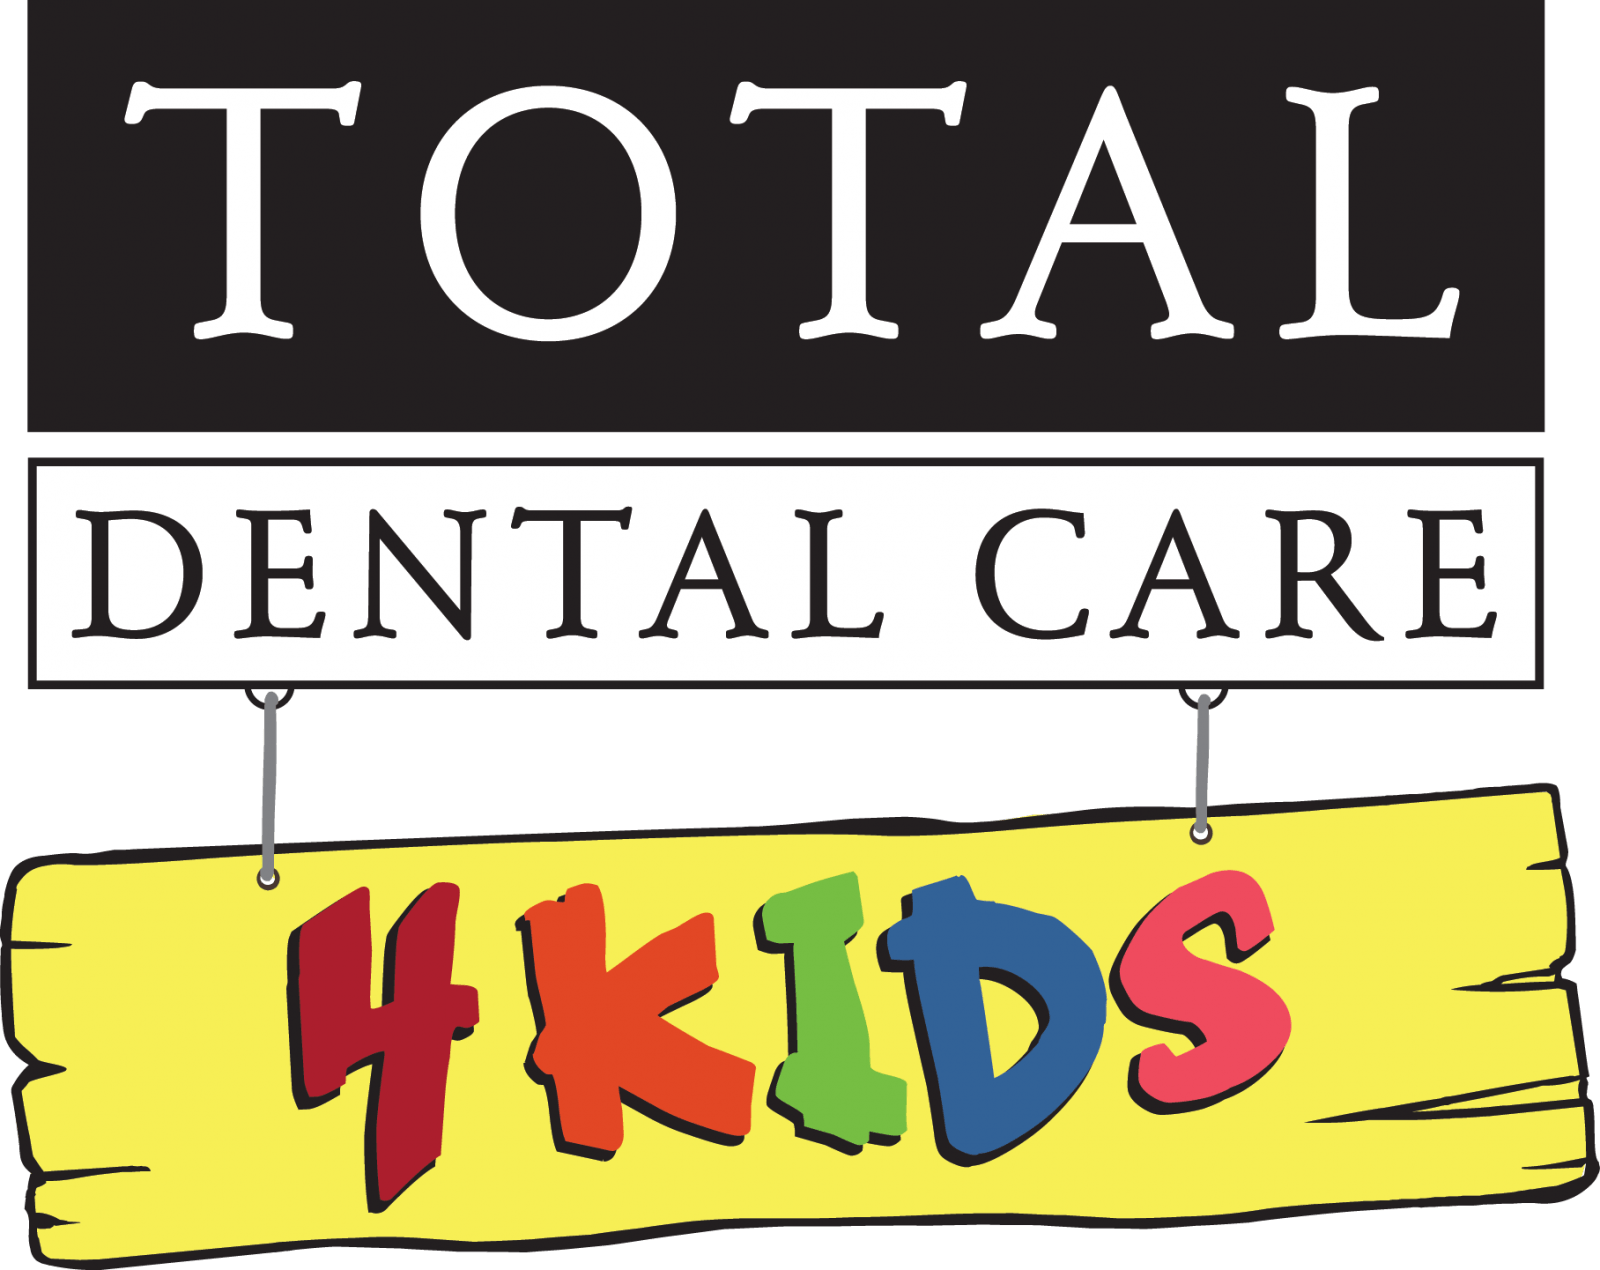 Total Dental Care - 4Kids Logo